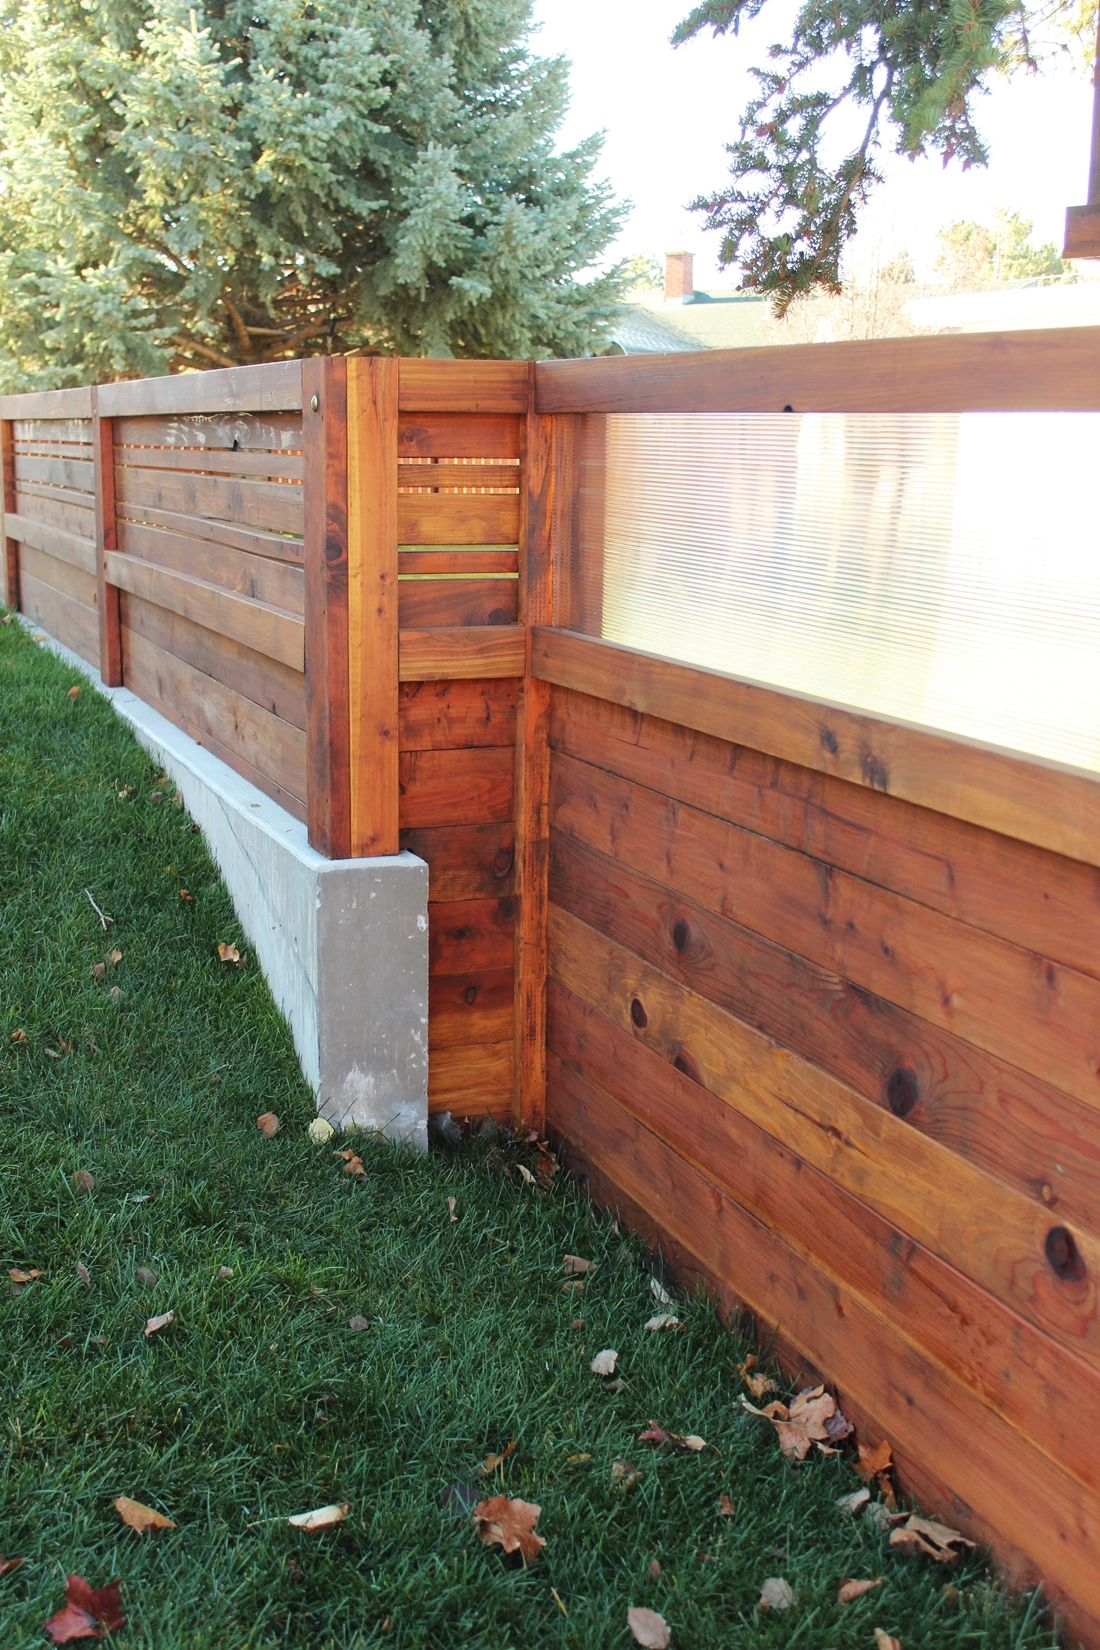 Curb Appeal - transition of materials in this fence